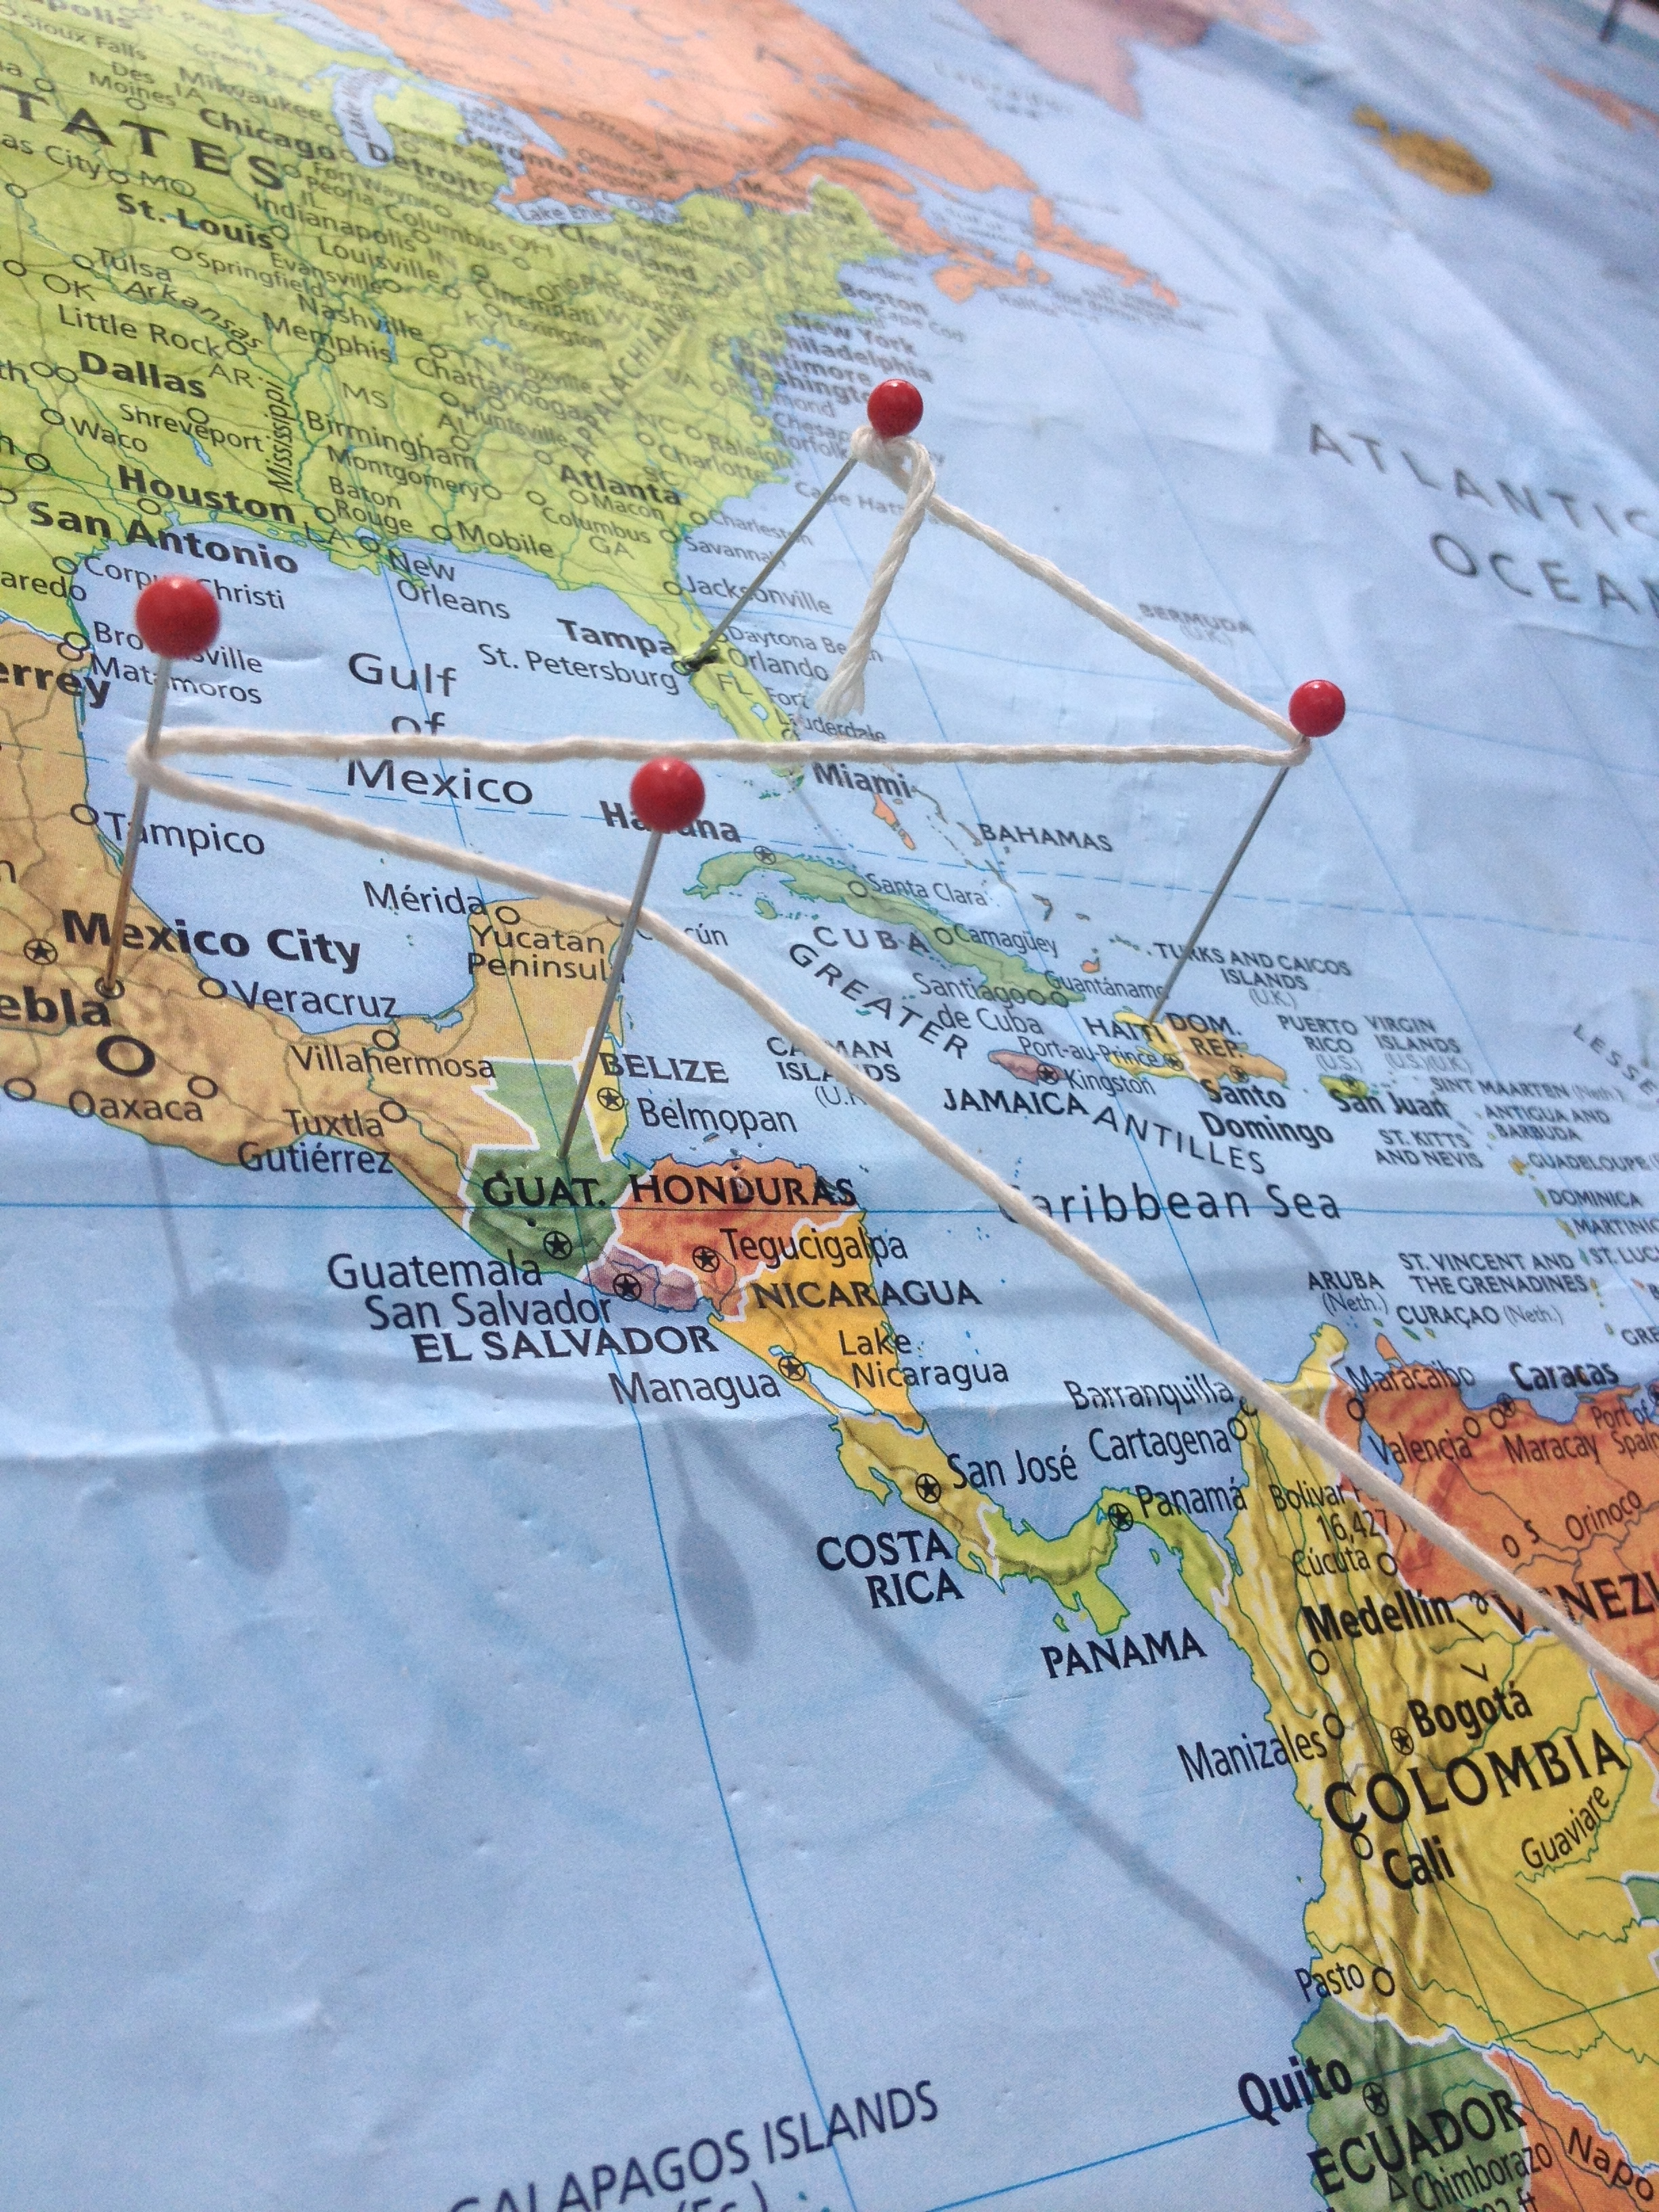 Pins on a Map depicting Connect Global's Past, Present, and Future Trips. 2013